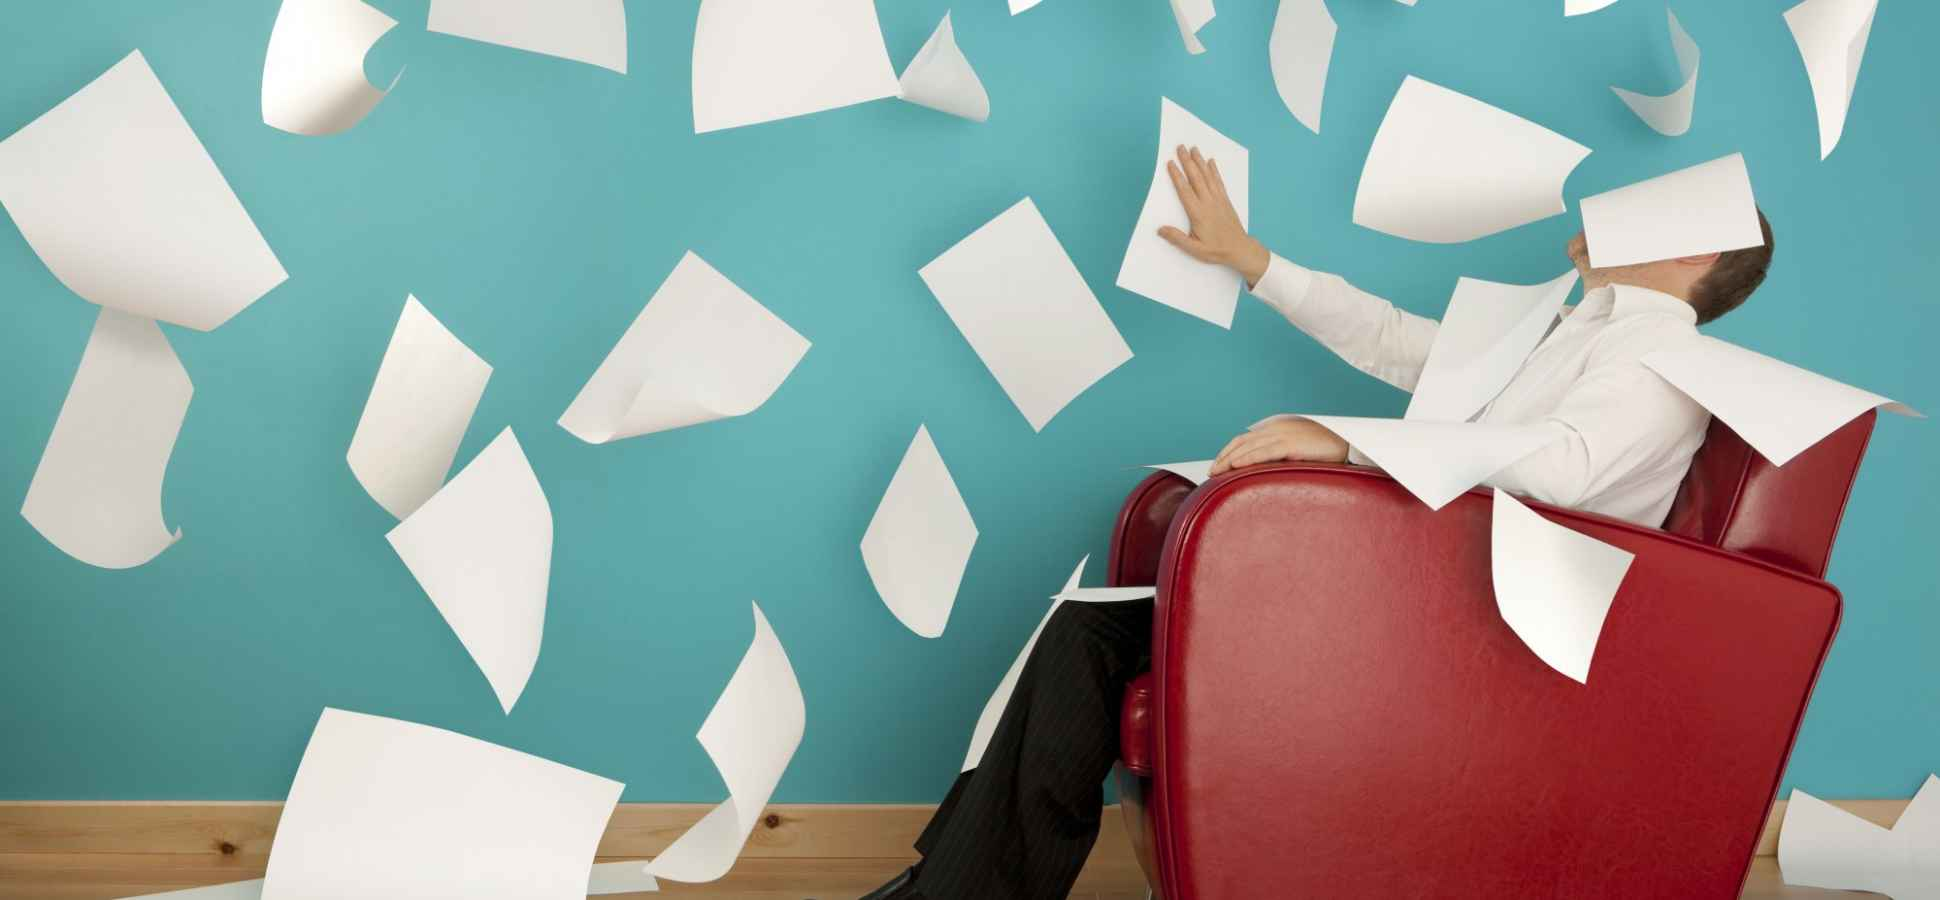 Why These 3 Annoying Cover Letter Blunders Make Recruiters Cringe ...